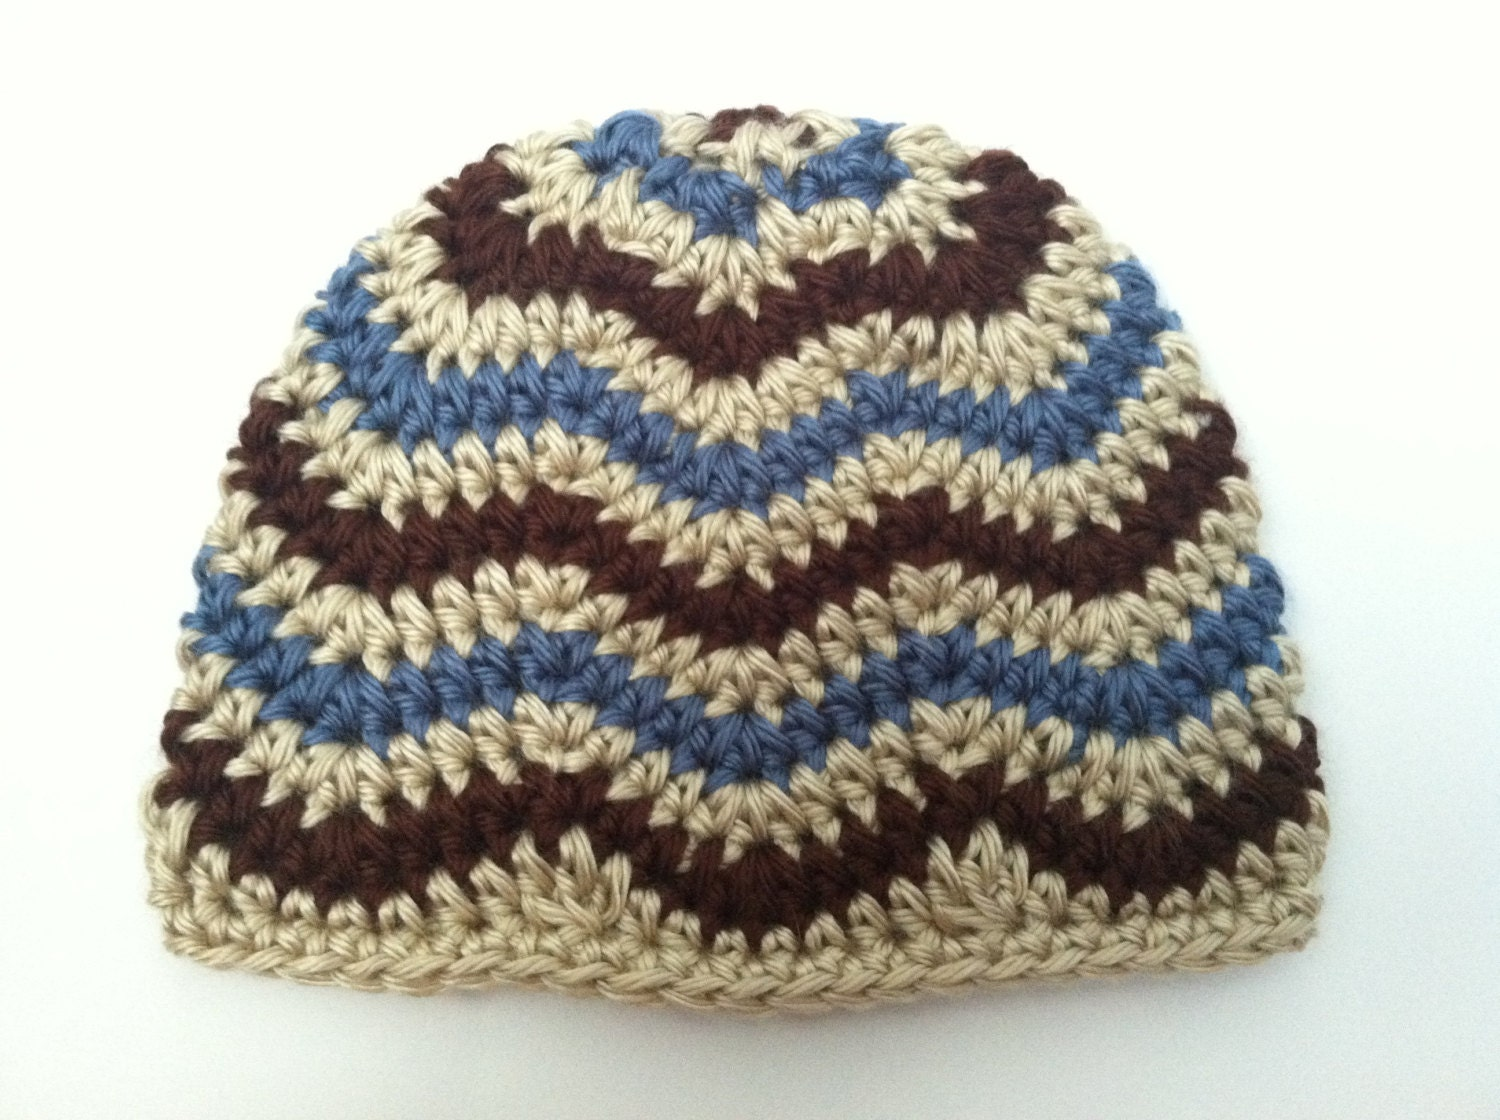 how to make a crochet hat for newborn